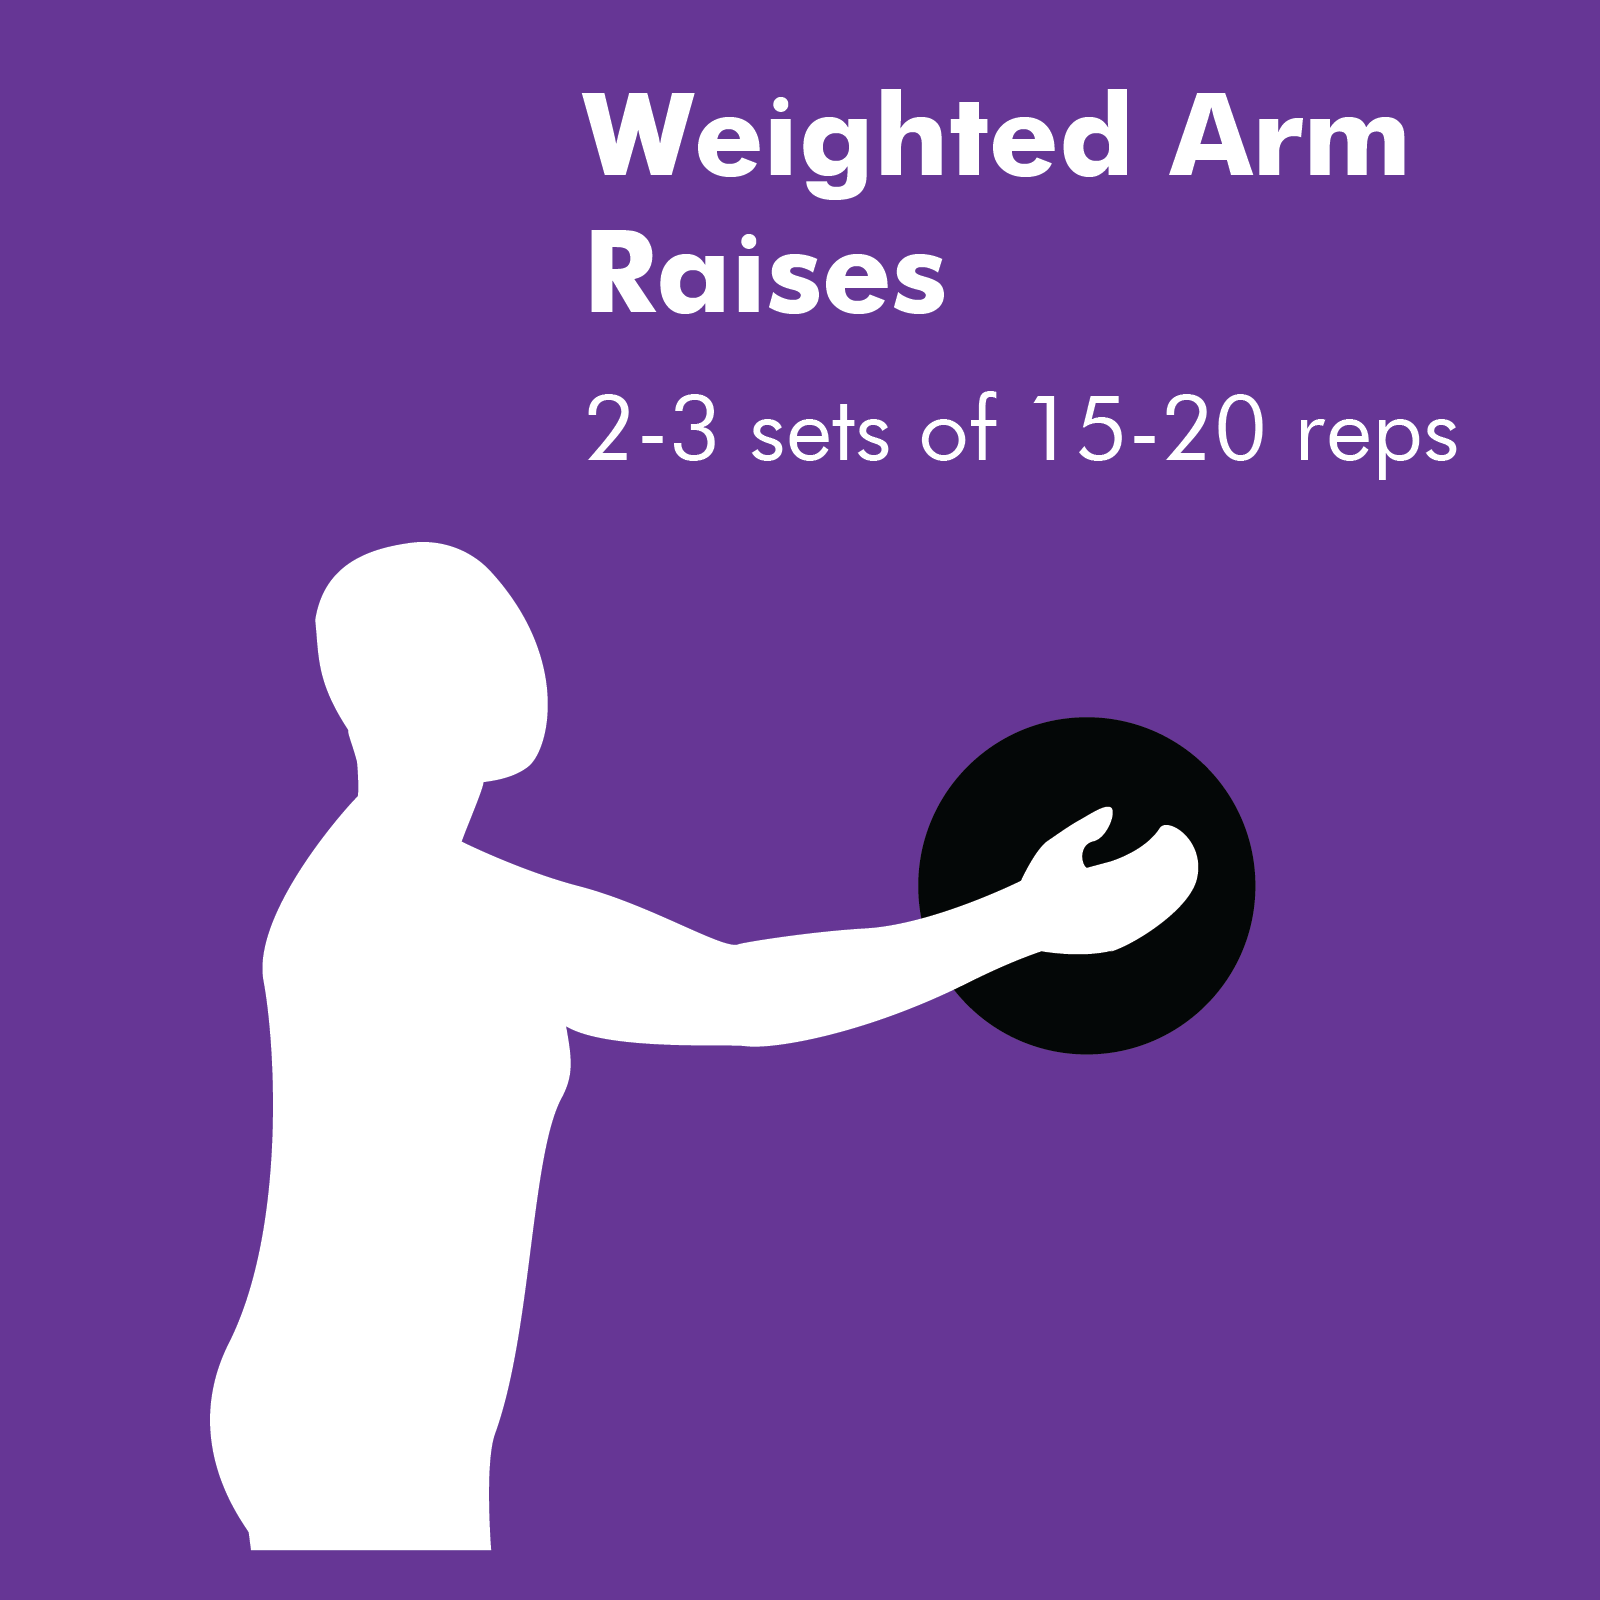 Arm raises are simple but, can quickly tire out your arms if you are using too much weight. Start out with something lightweight and slowly work your way up with heavier items like a gallon jug or even a medicine ball.